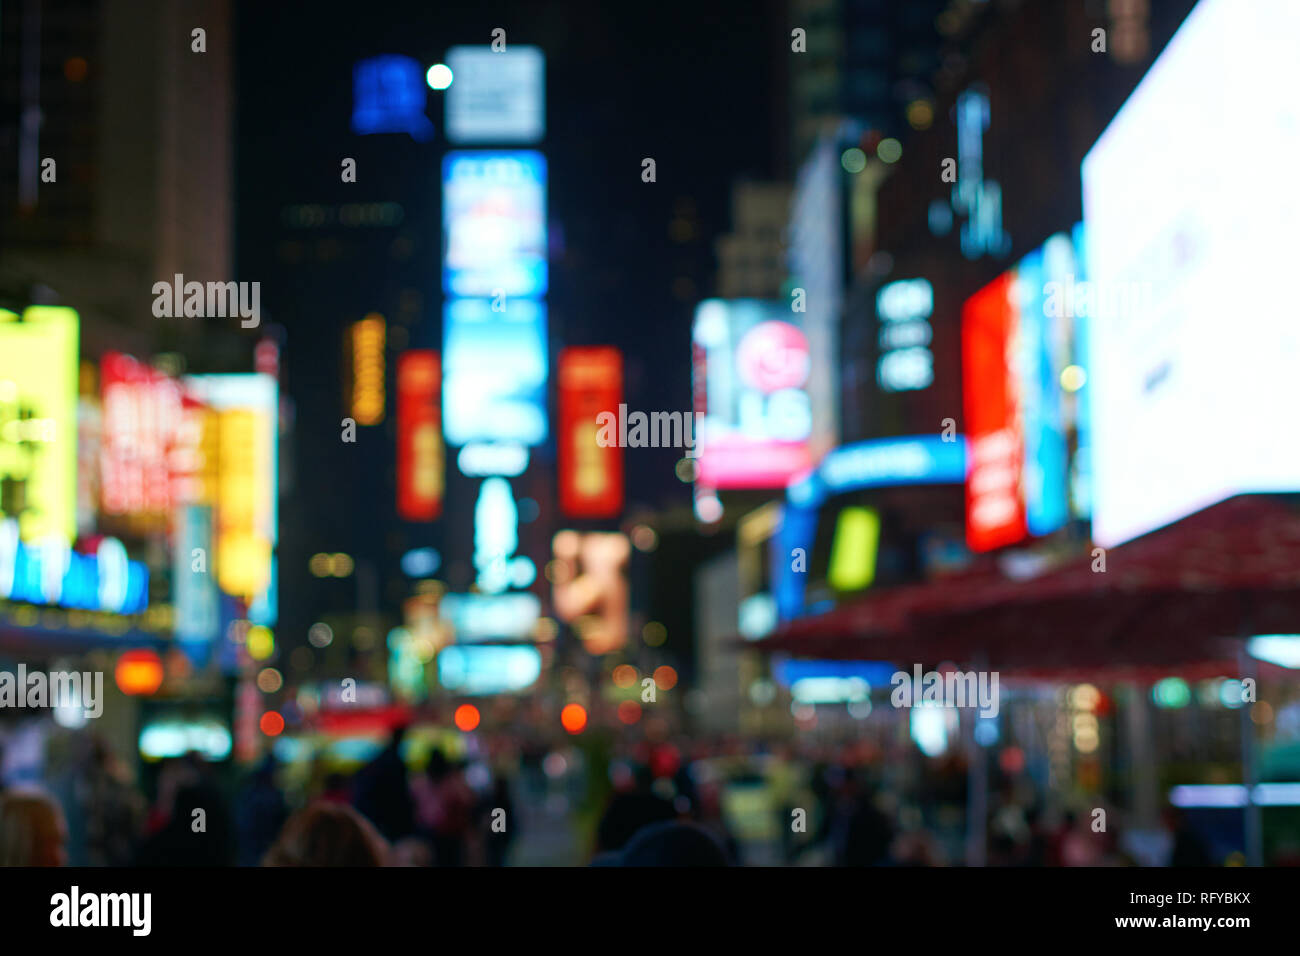 Defocused blur of New York City lights on Times Square - Stock Image